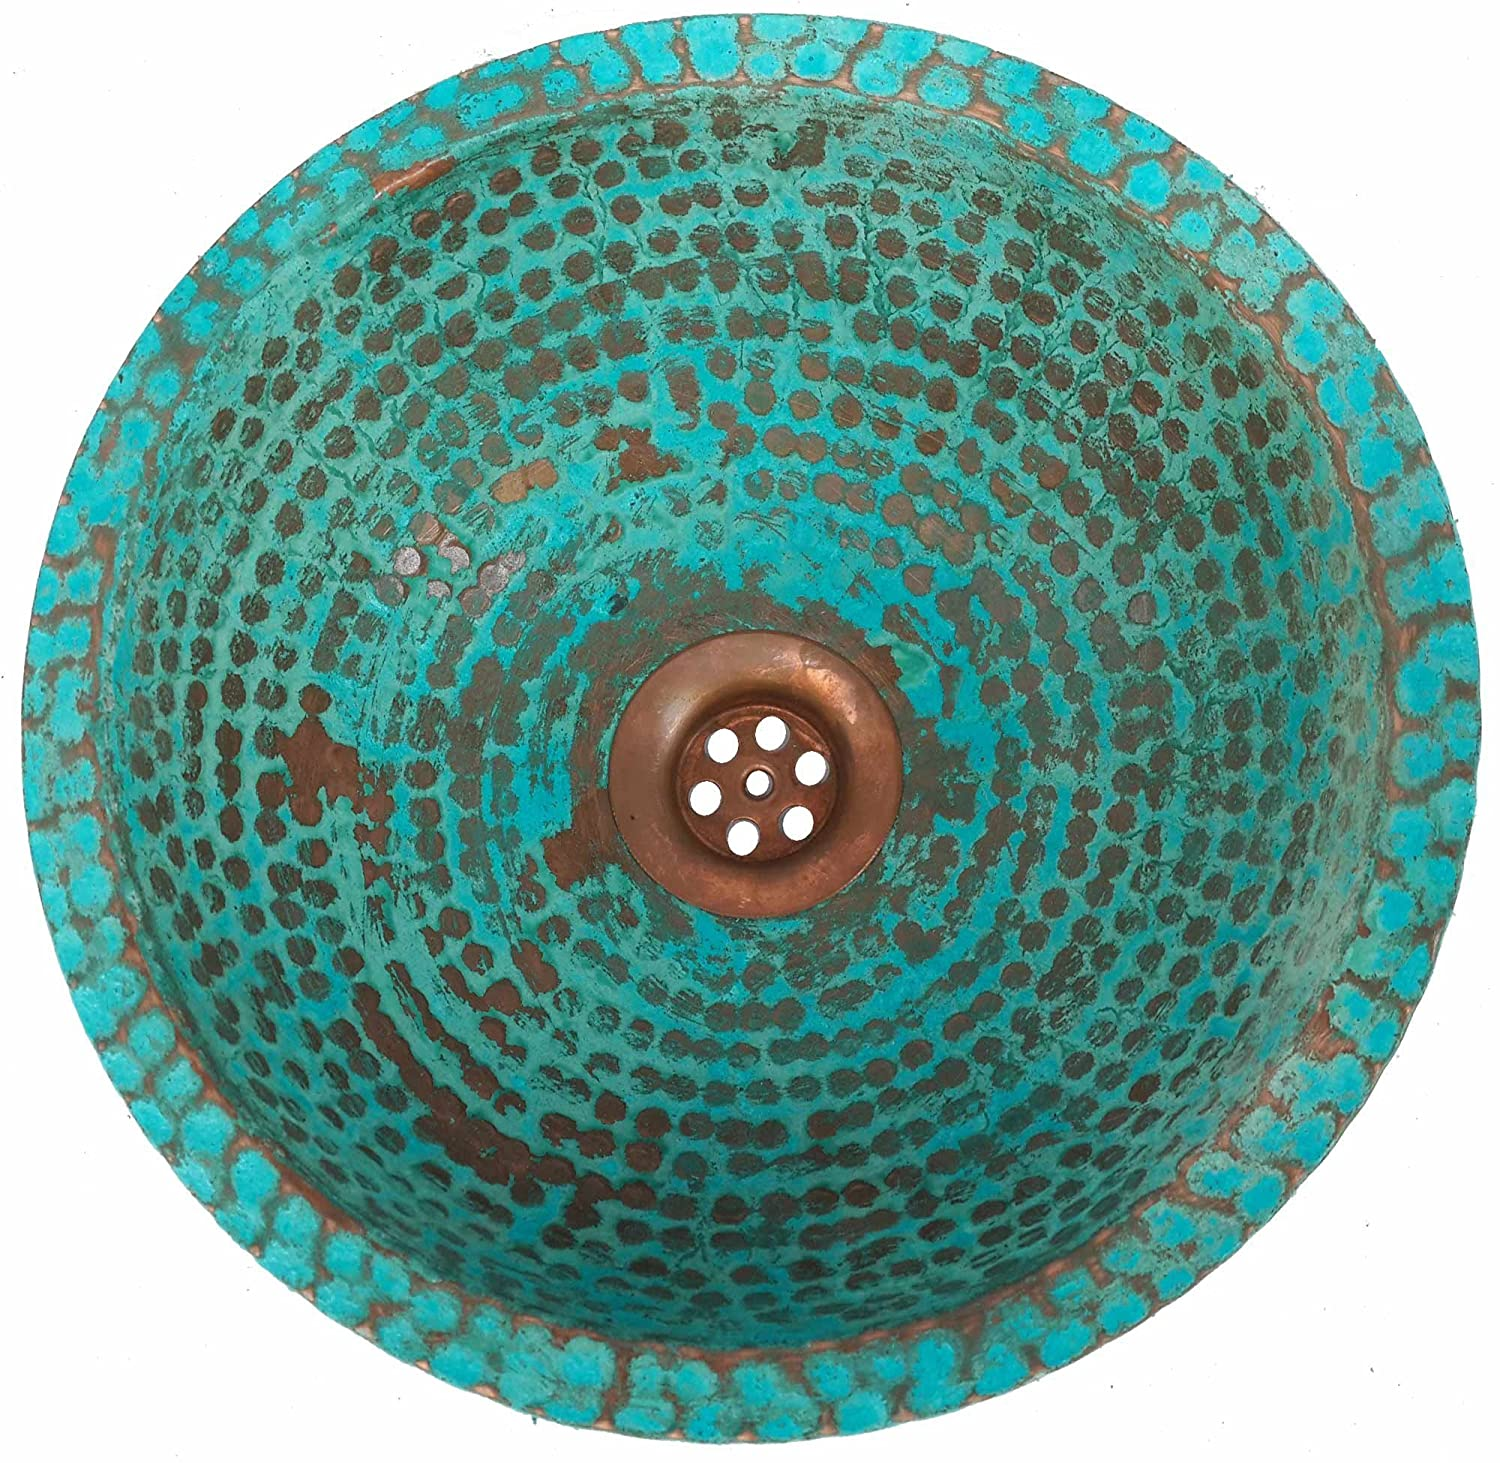 Egypt gift shops Handmade Rustic Dome Turquoise VERY SMALL TINY Vanity Innovative Pure Natural Copper Bathroom Caravan Cabin Motor Van Mobile Home Sink House Remodel Project Contracting